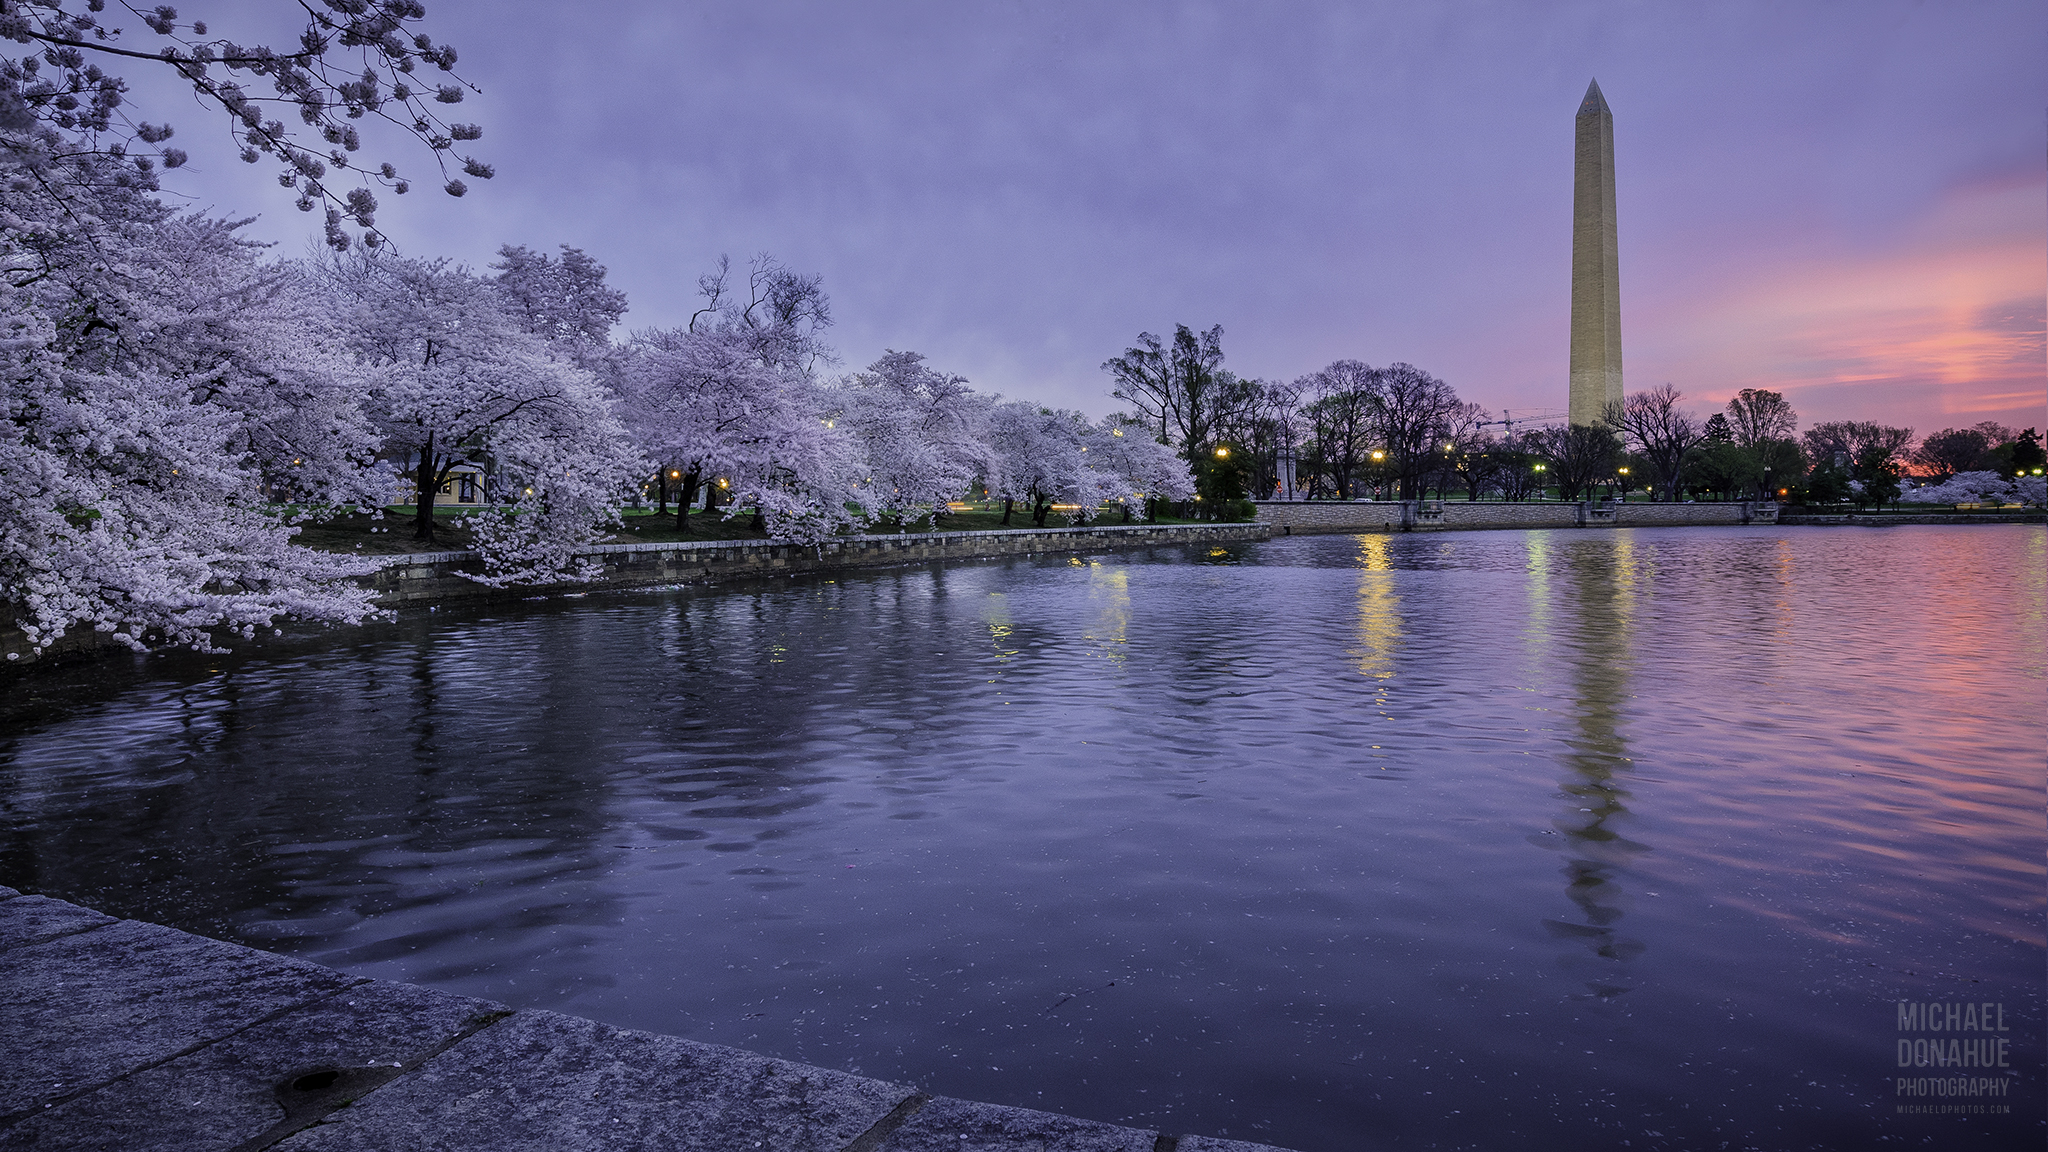 Cherry Blossom Glow by Michael Donahue